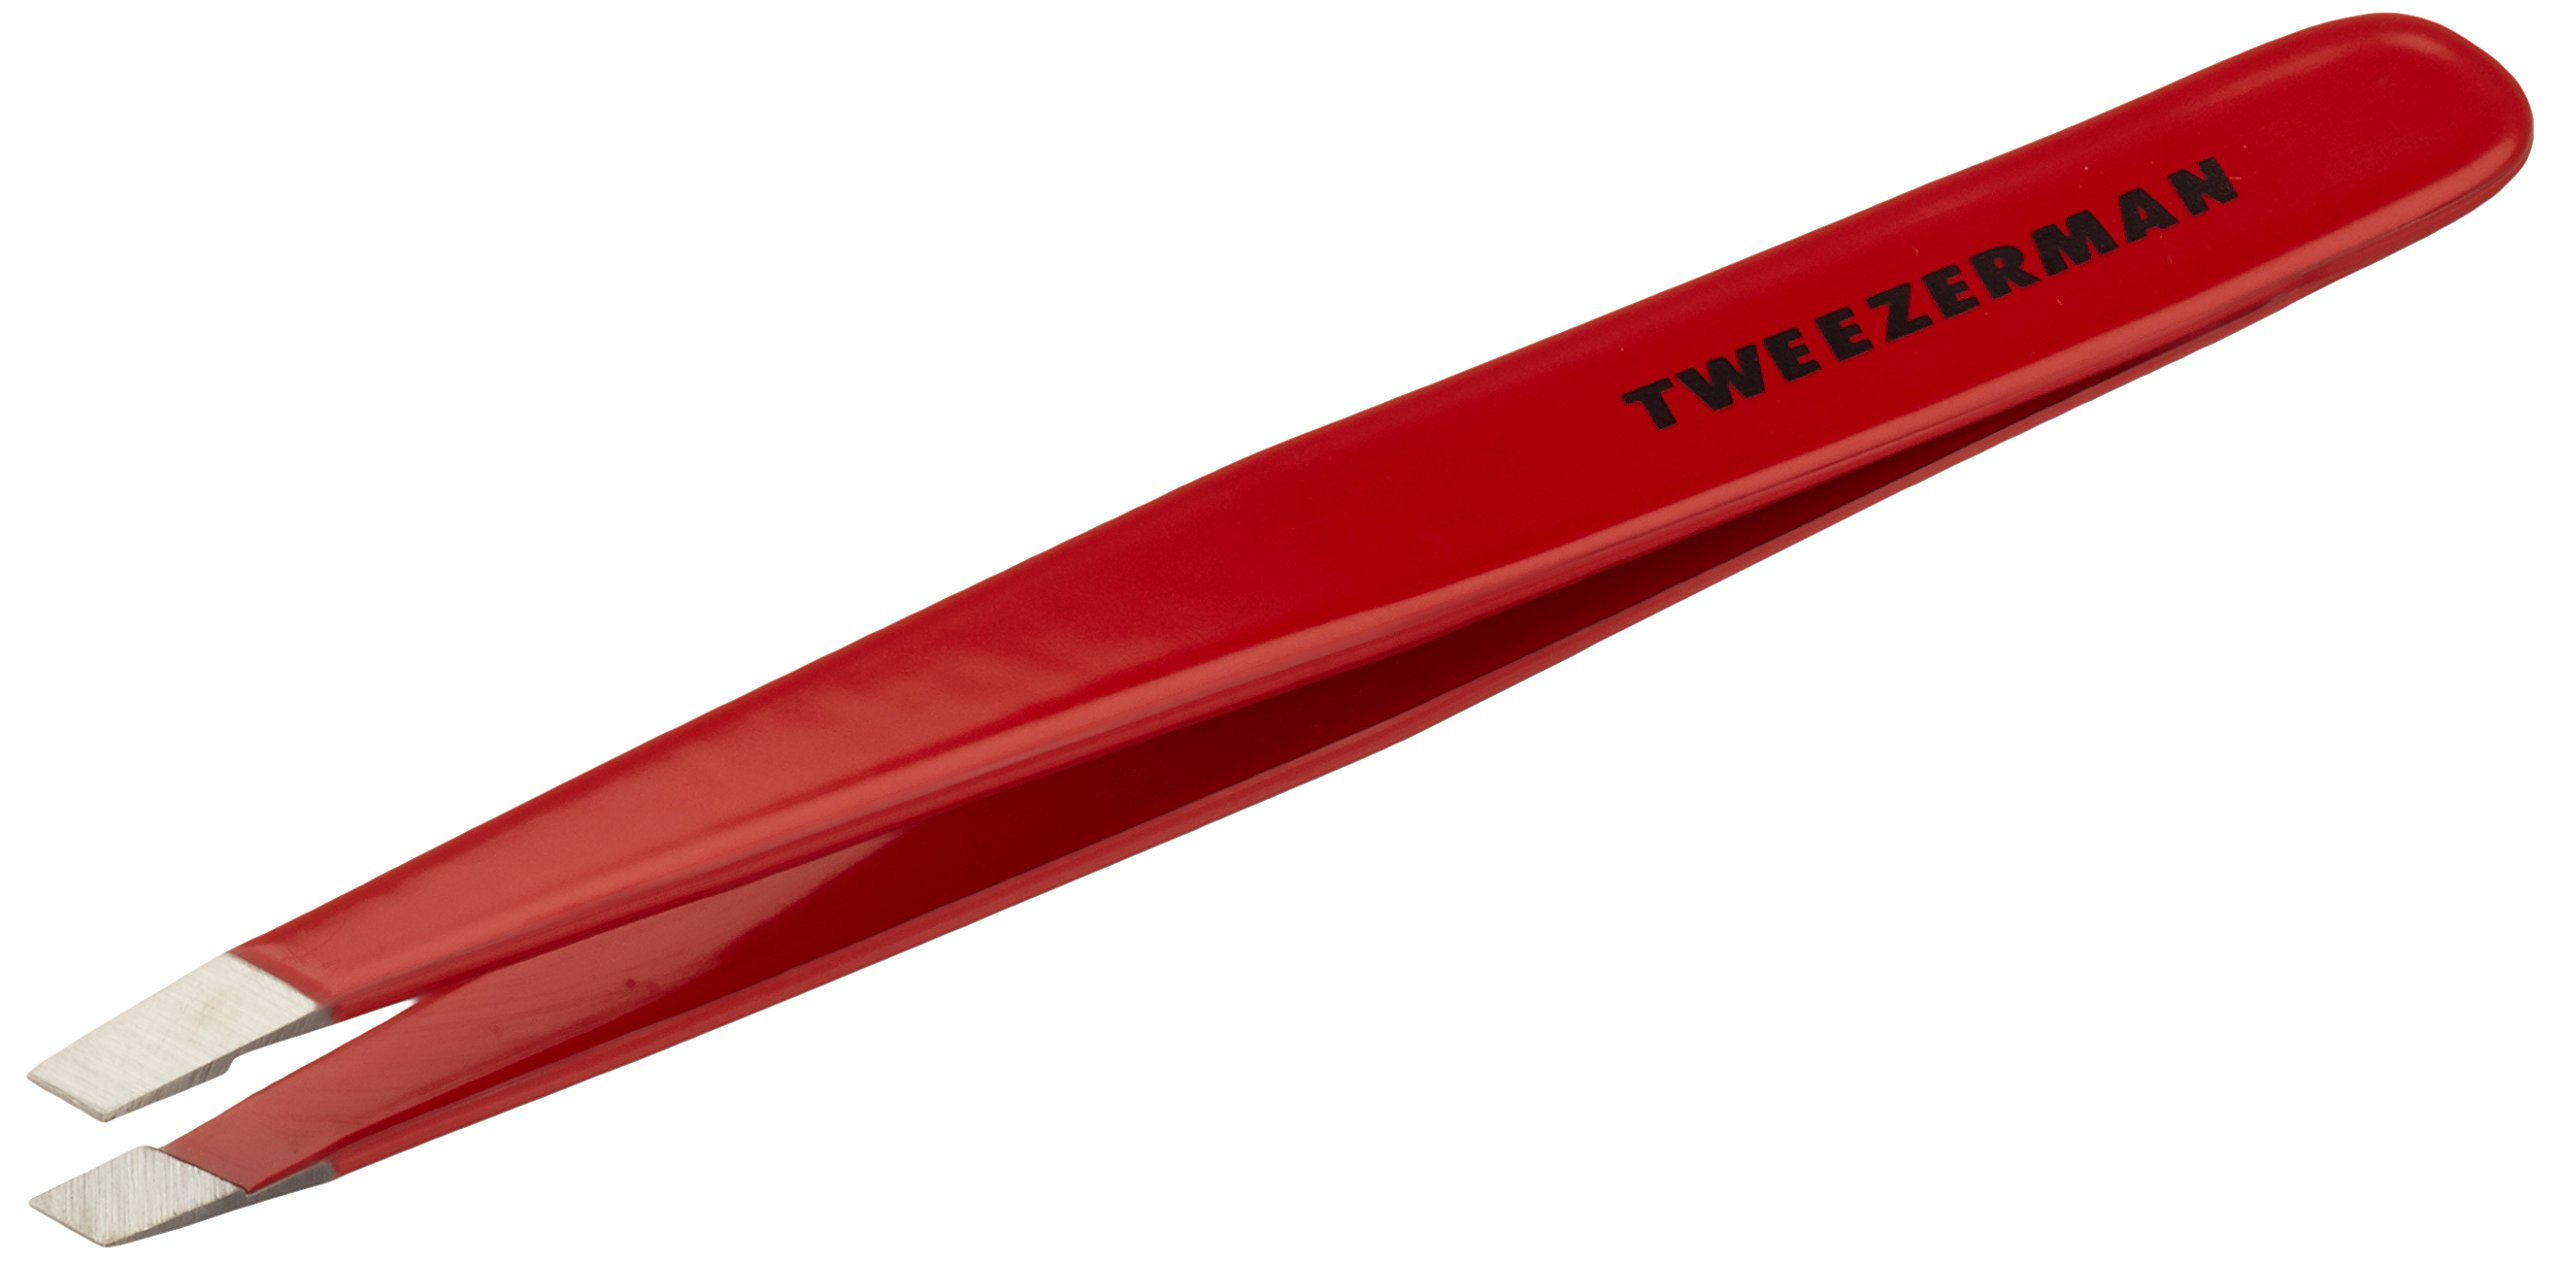 Tweezerman Stainless Steel Slant Signature Red Tweezer by Tweezerman (Image #1)